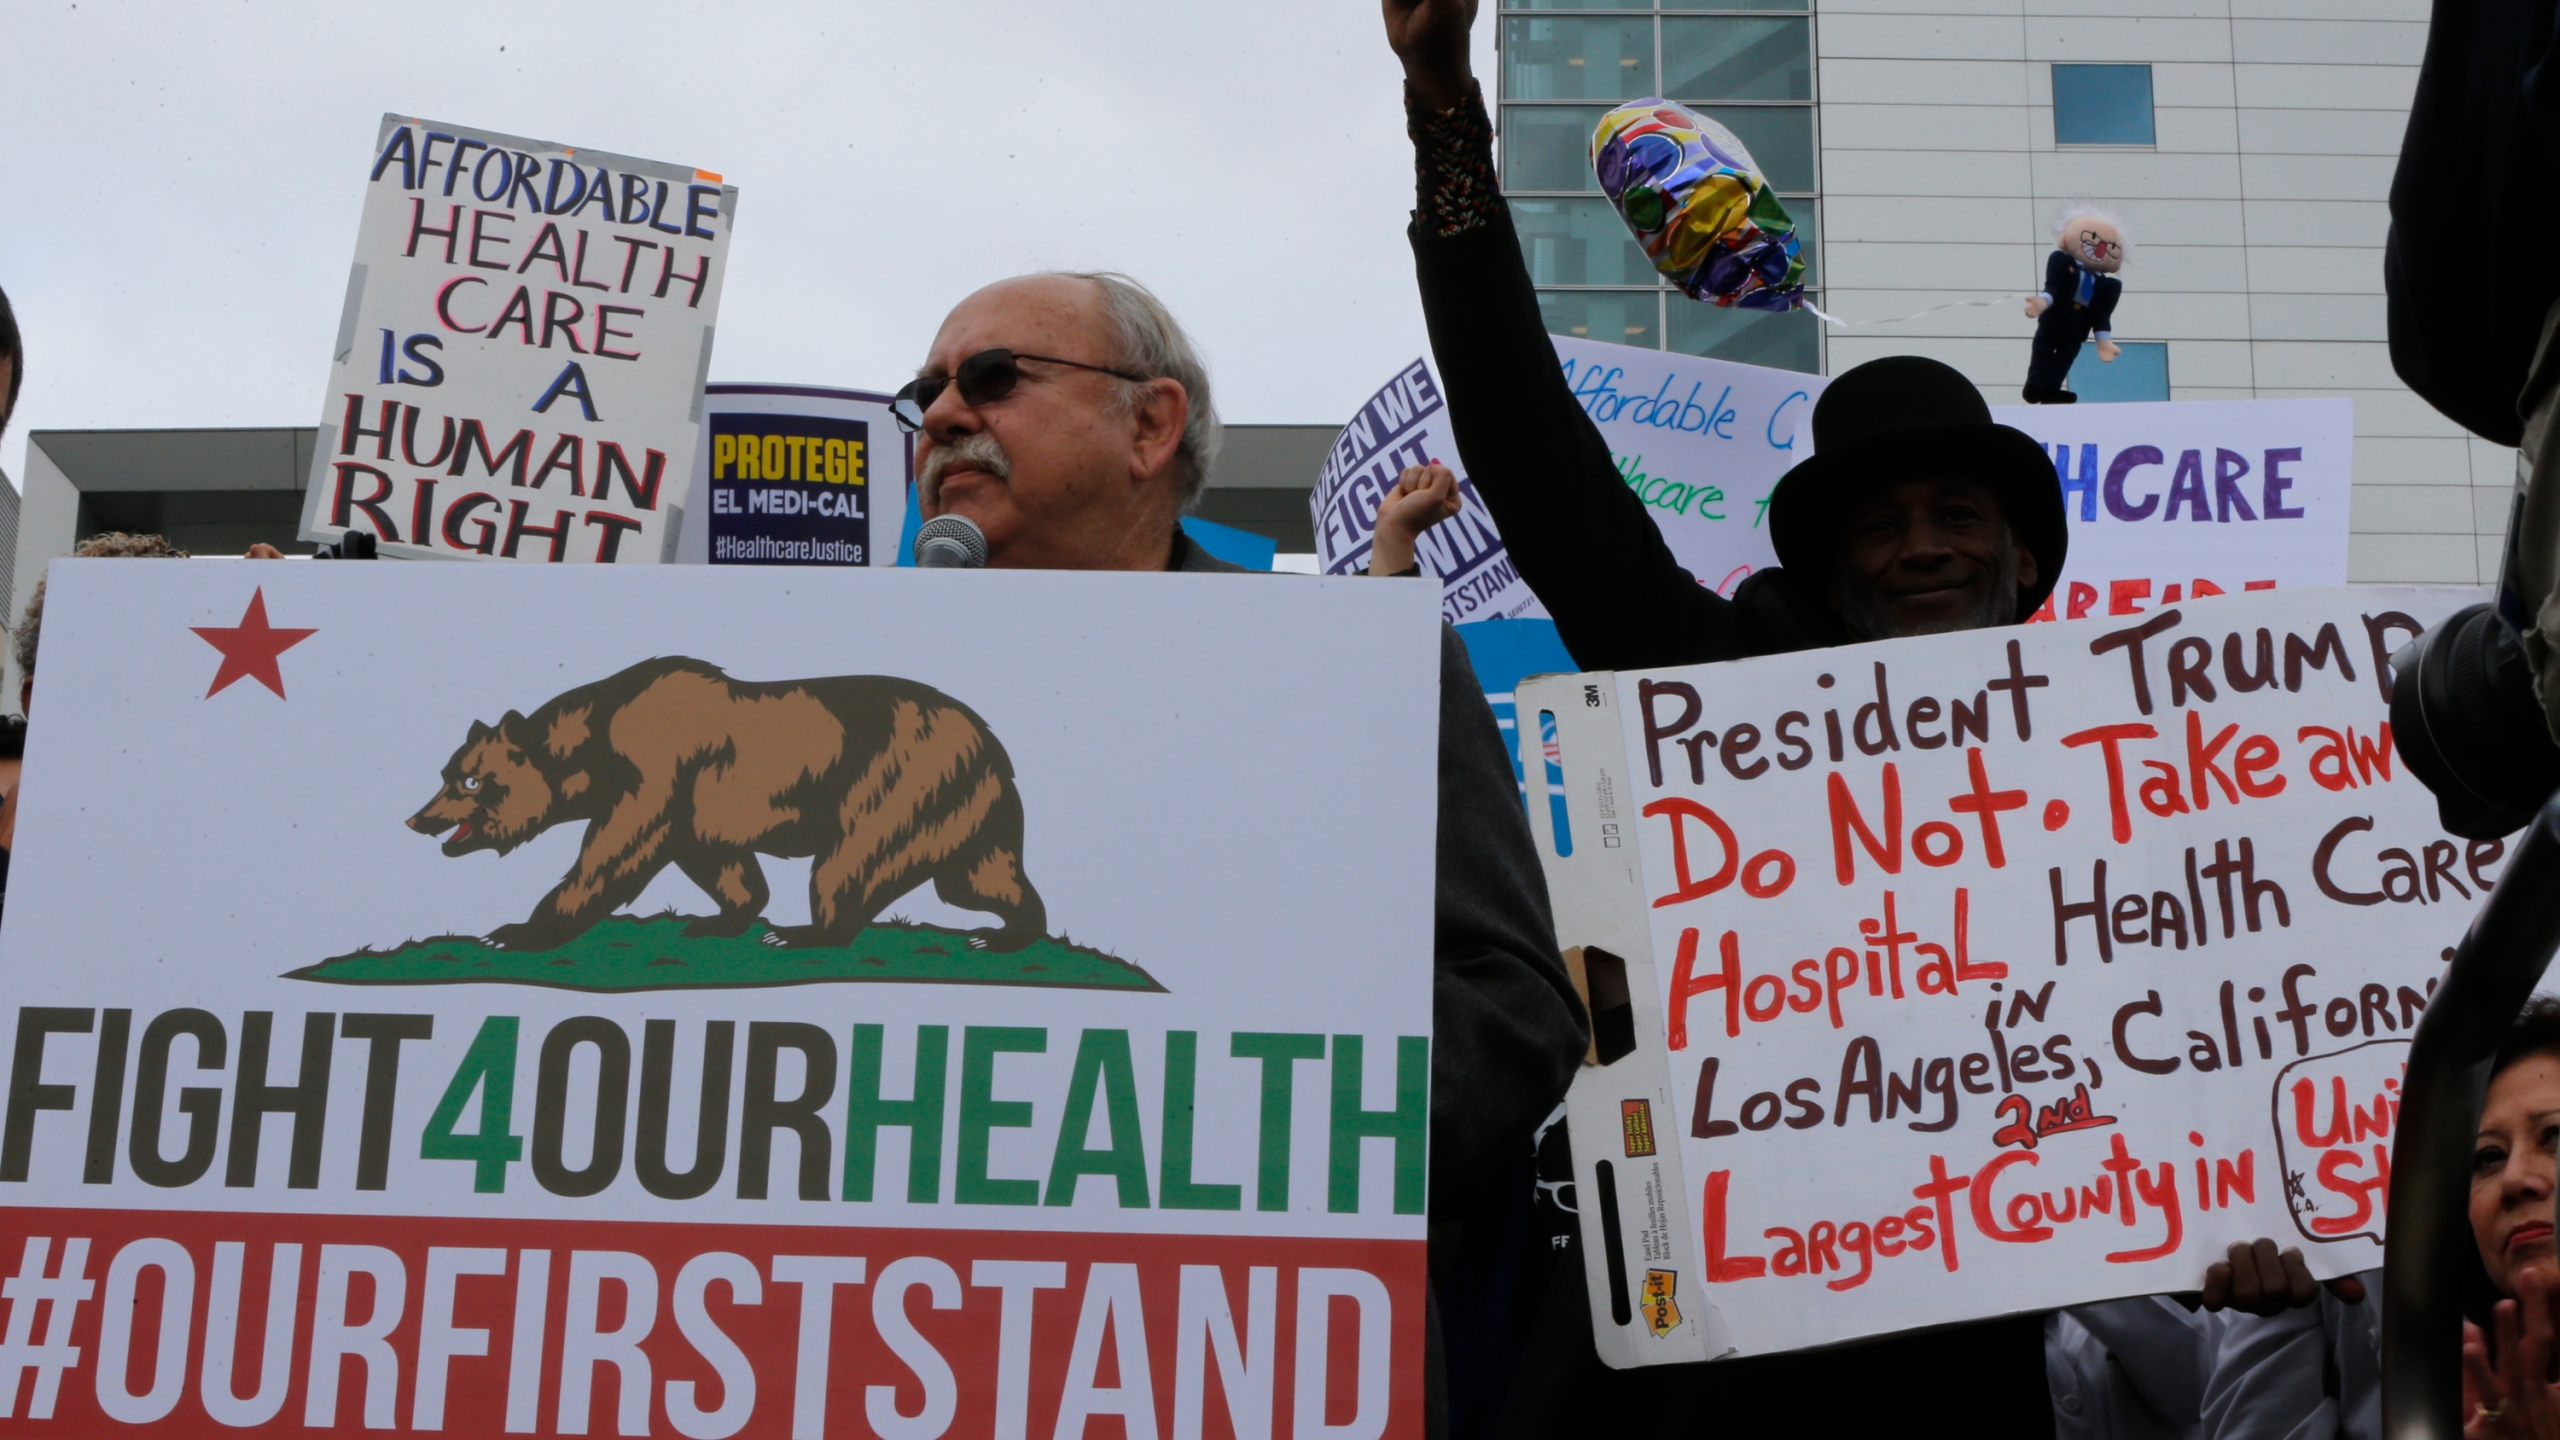 Health Care Rallies Photo by Damian Dovarganes, AP Photo_266261